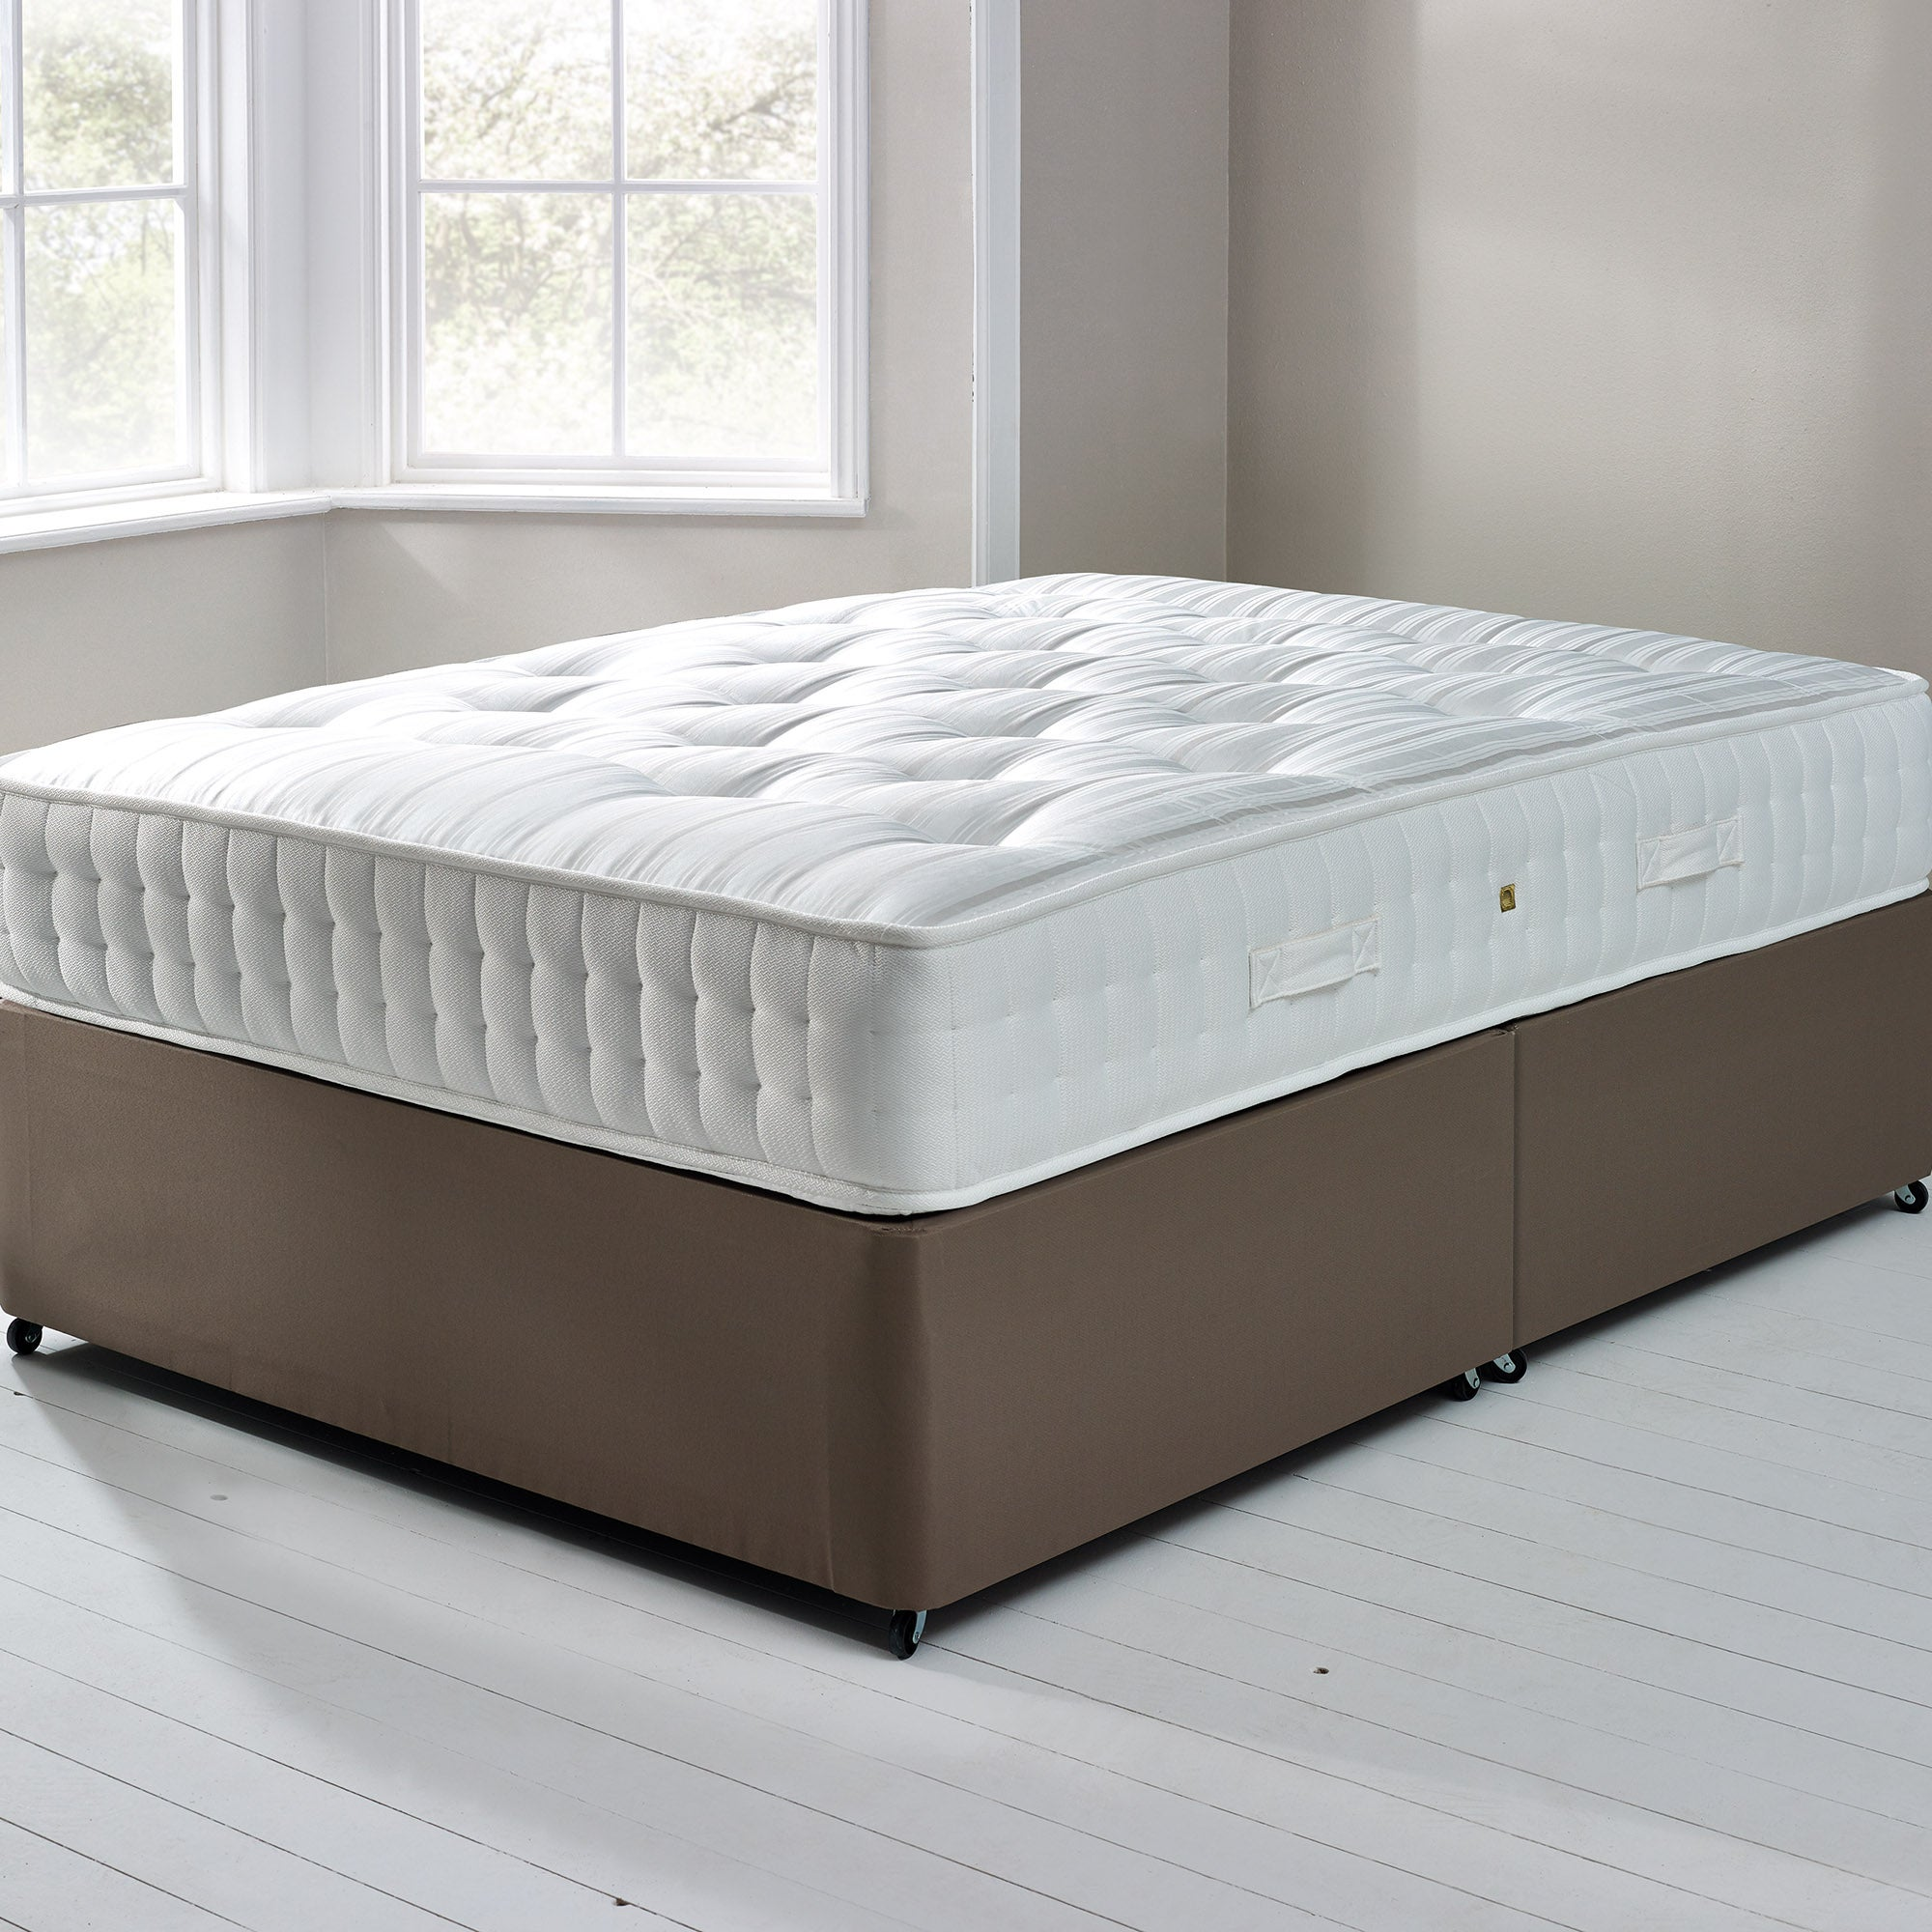 Fogarty Orthopaedic 2000 Mattress and Divan Collection